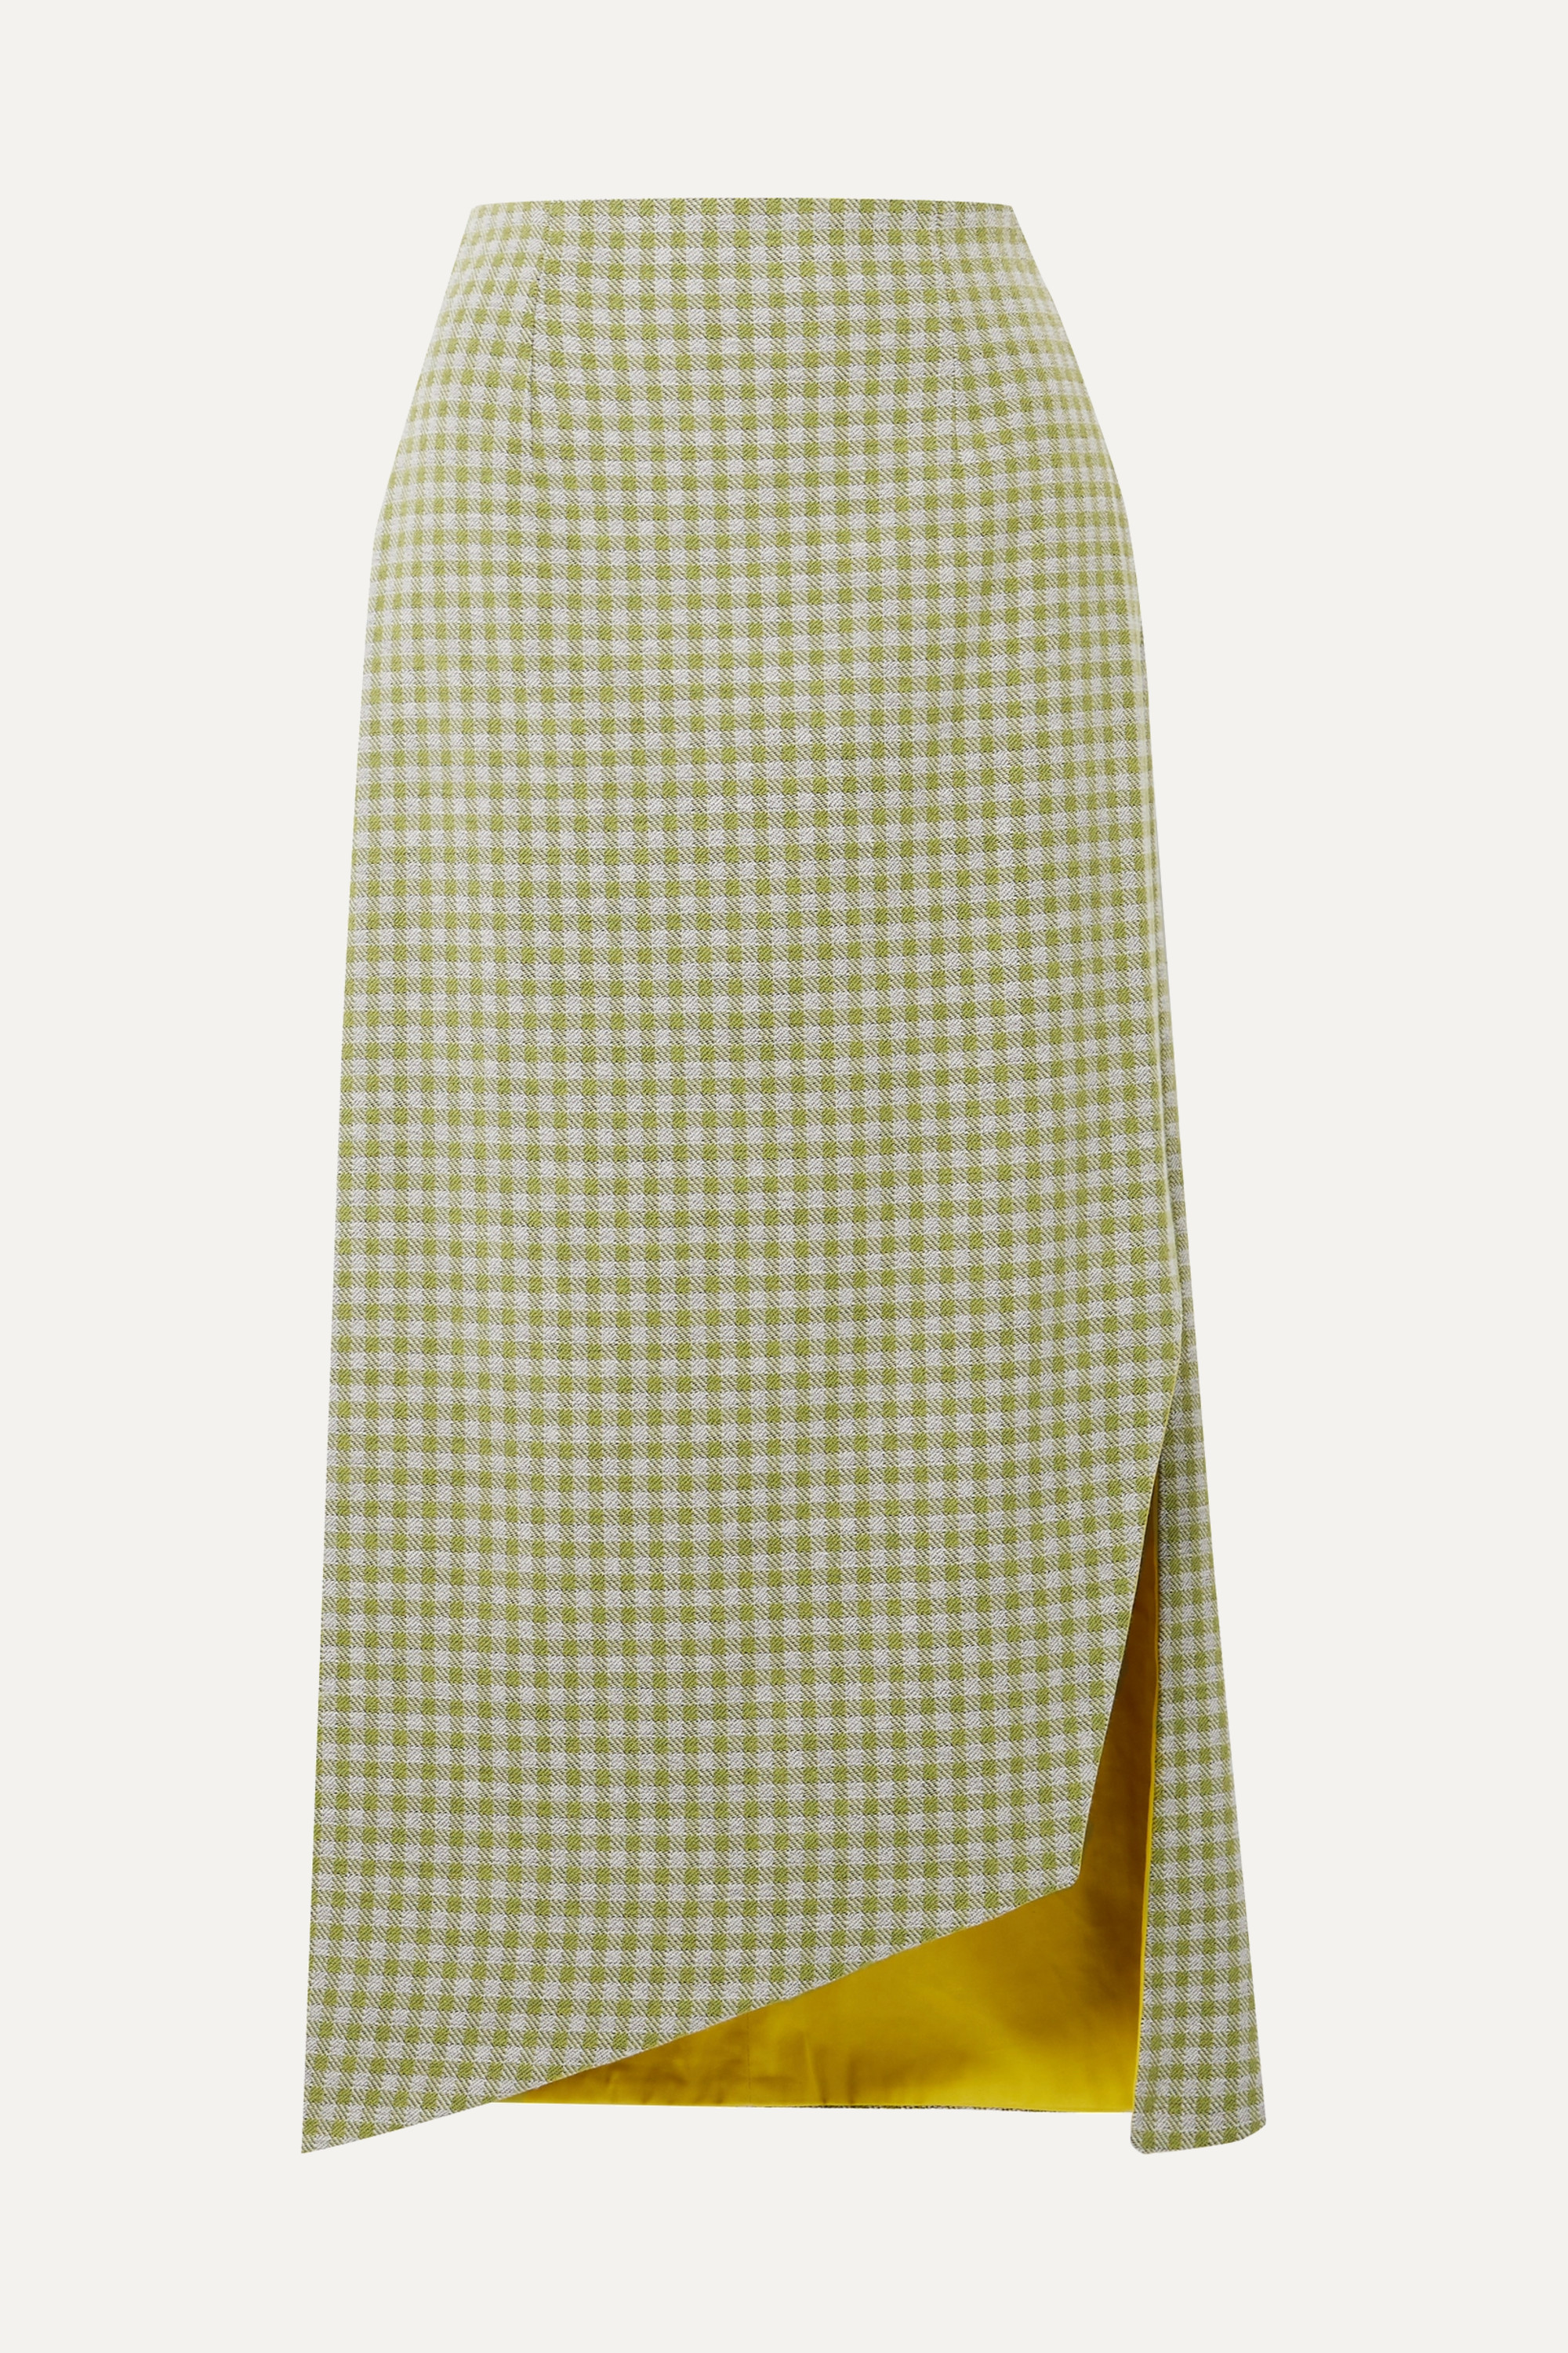 Bea gingham woven midi skirt by SILVIA TCHERASSI, available on net-a-porter.com for $288 Amal Clooney Skirt Exact Product